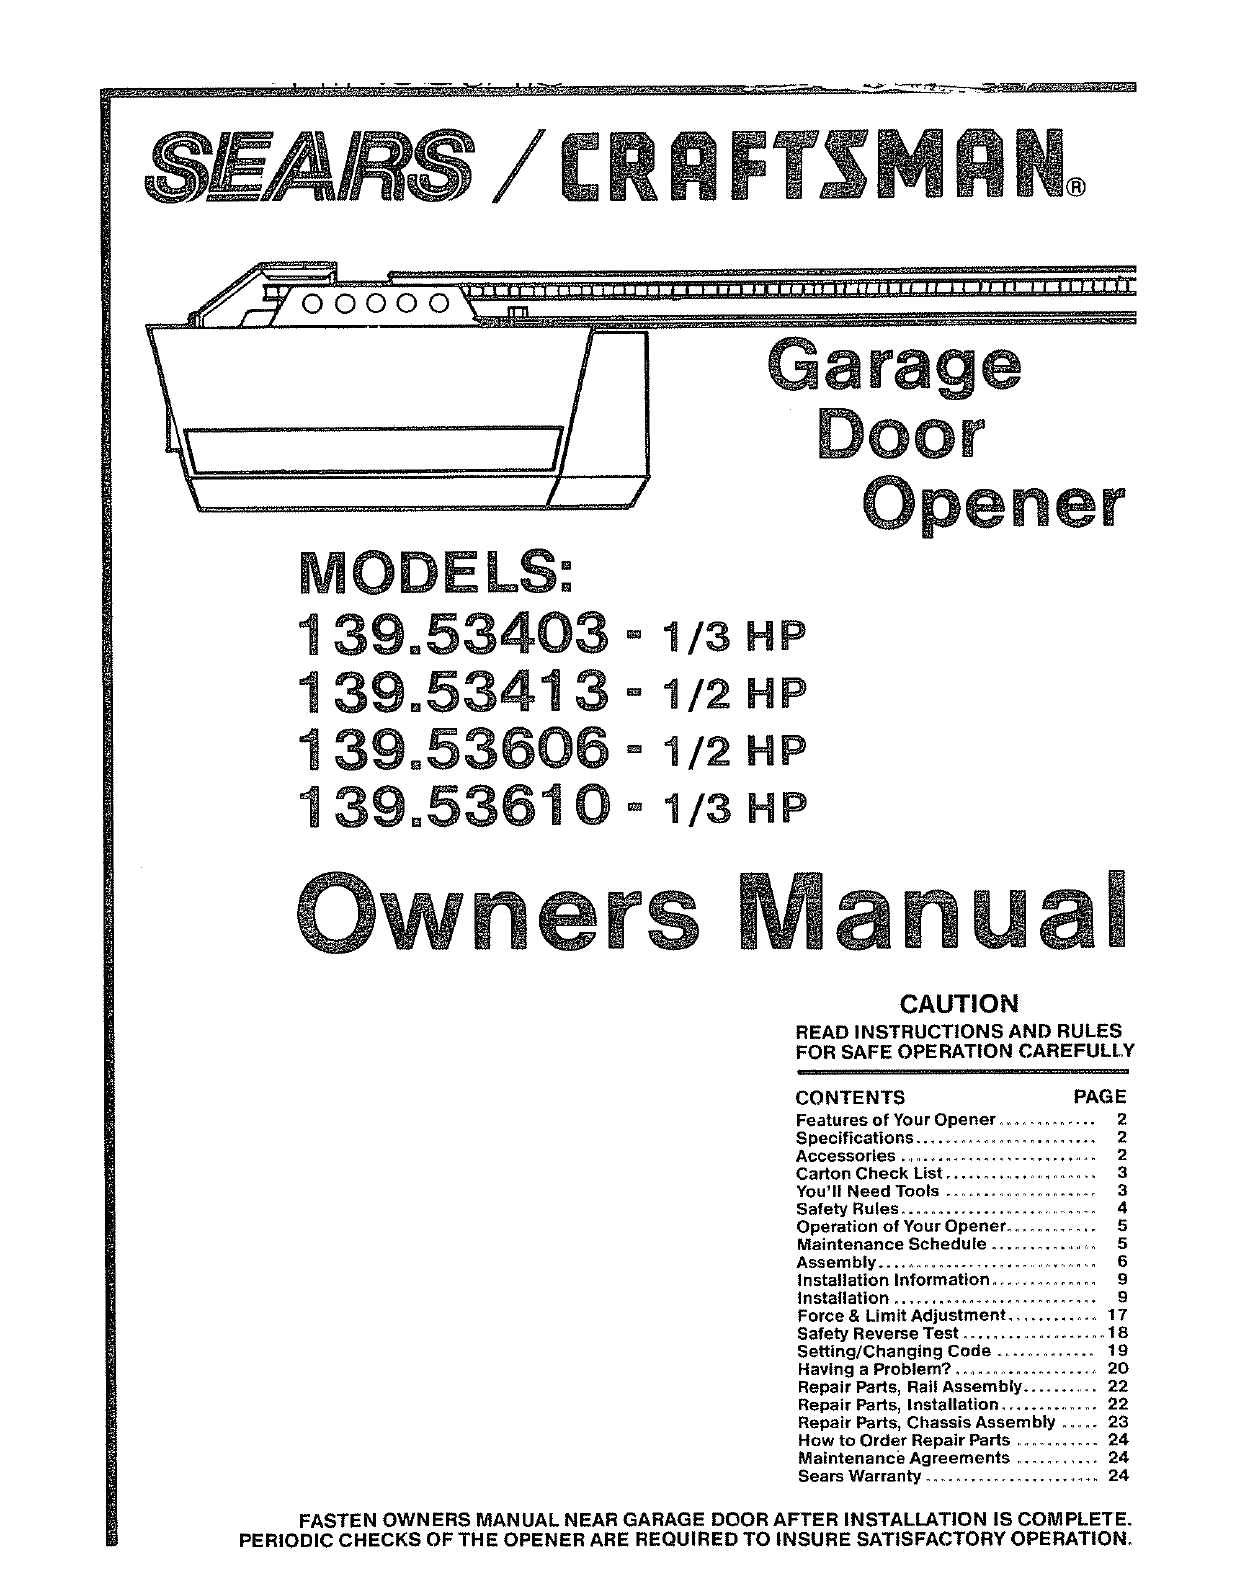 chamberlain garage door wiring diagram craftsman    garage       door    opener 139 53610 user guide  craftsman    garage       door    opener 139 53610 user guide